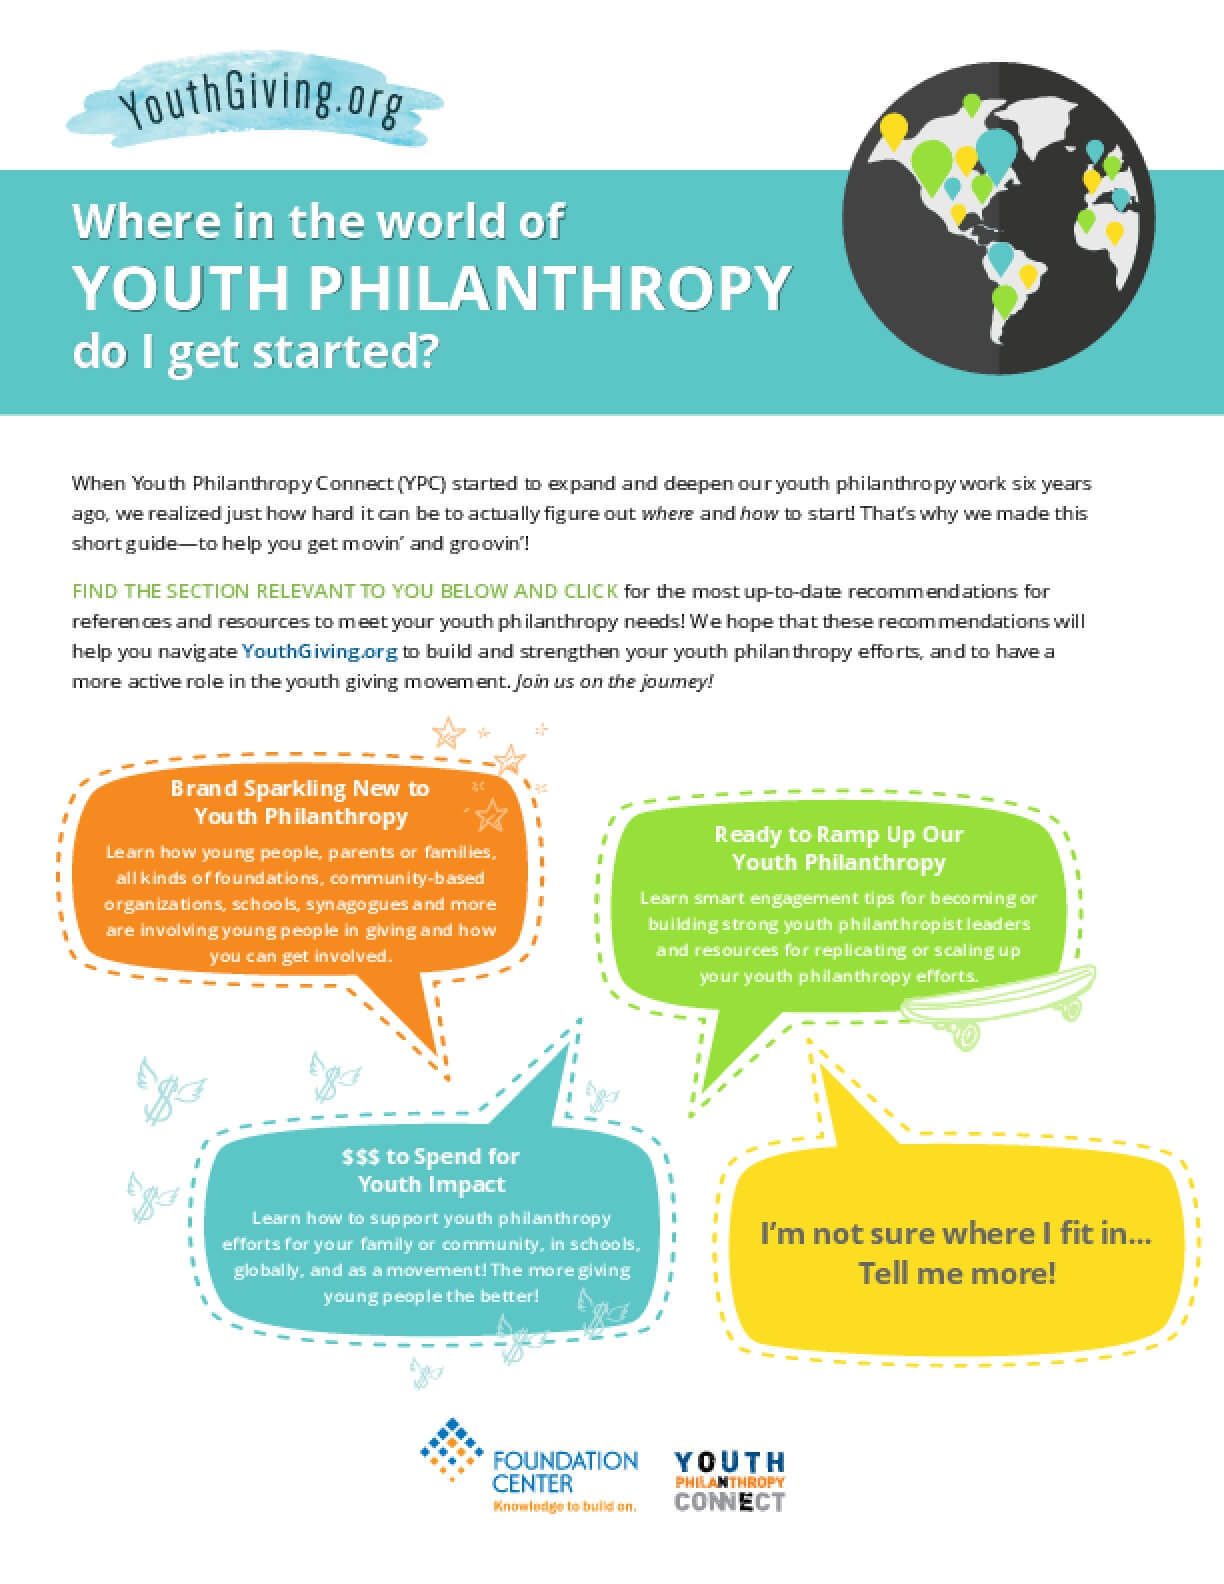 Where in the World of Youth Philanthropy Do I Get Started?